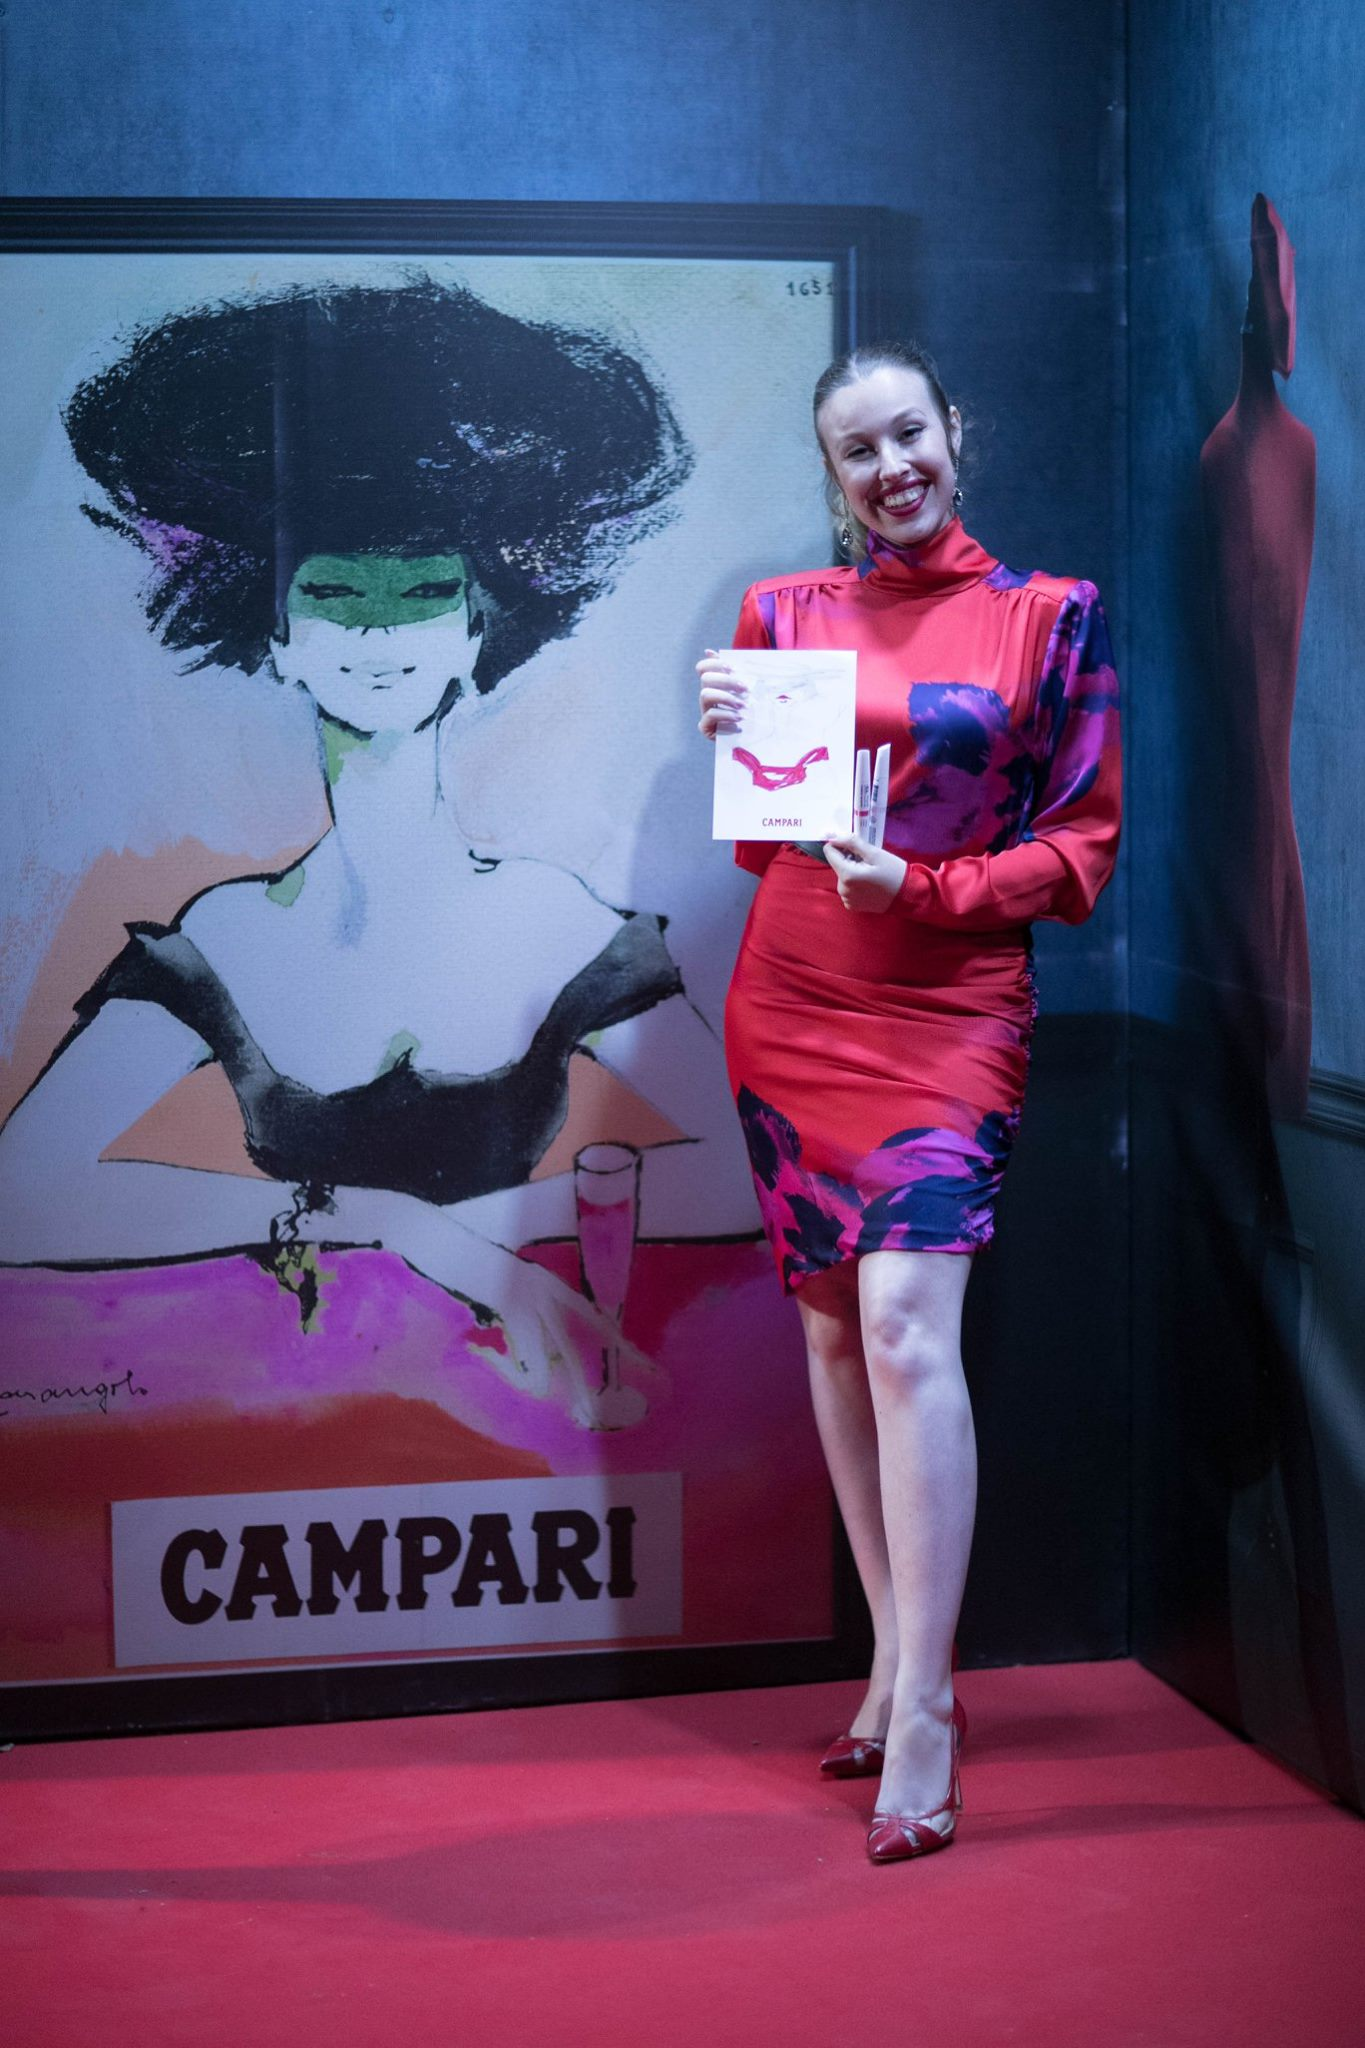 Malta Film Festival 2018 - Official illustrator for Campari at the Malta Film Festival 2018